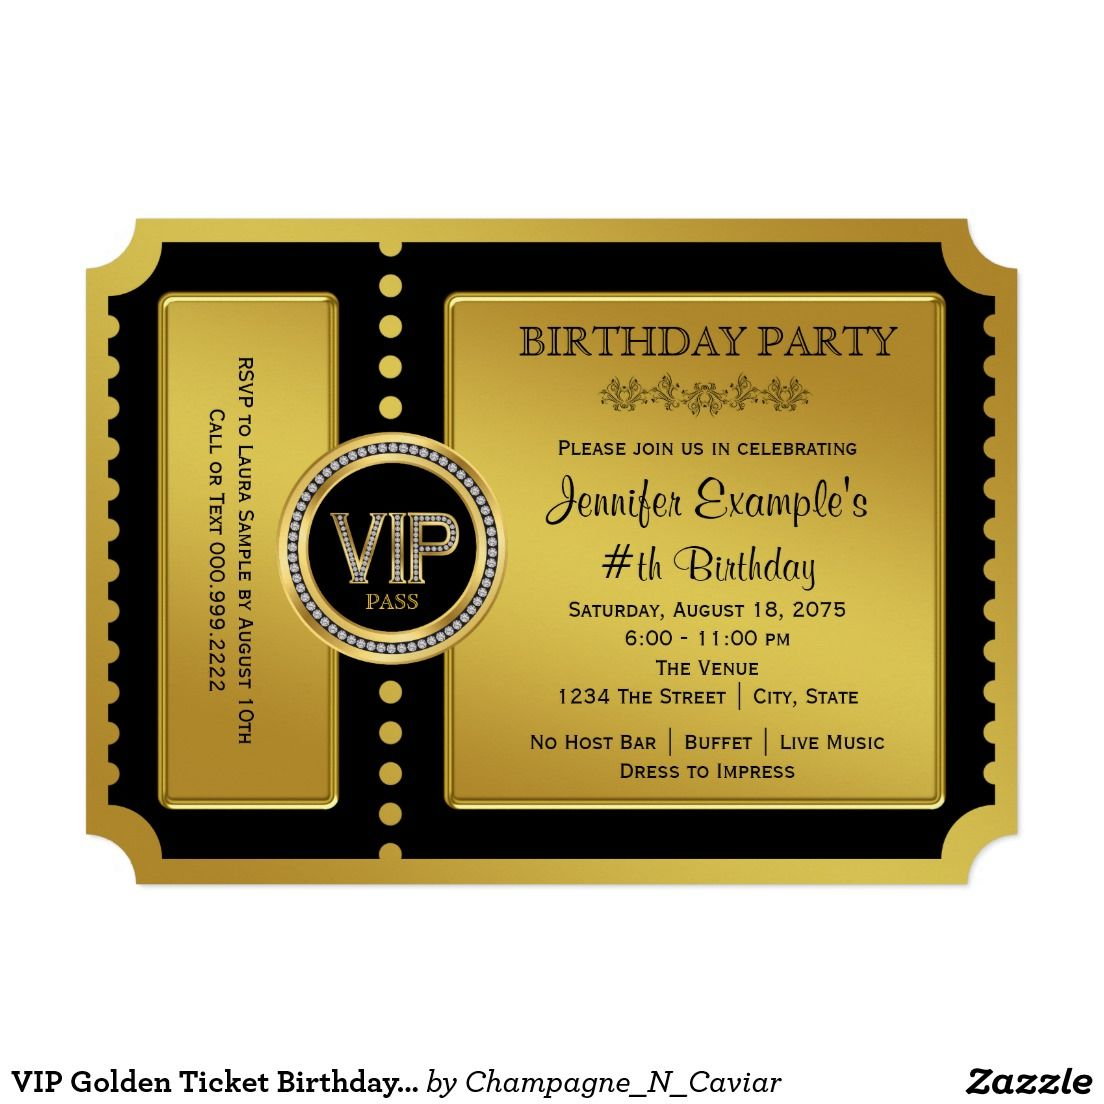 VIP Golden Ticket Birthday Party Card | Golden ticket, Vip and Birthdays